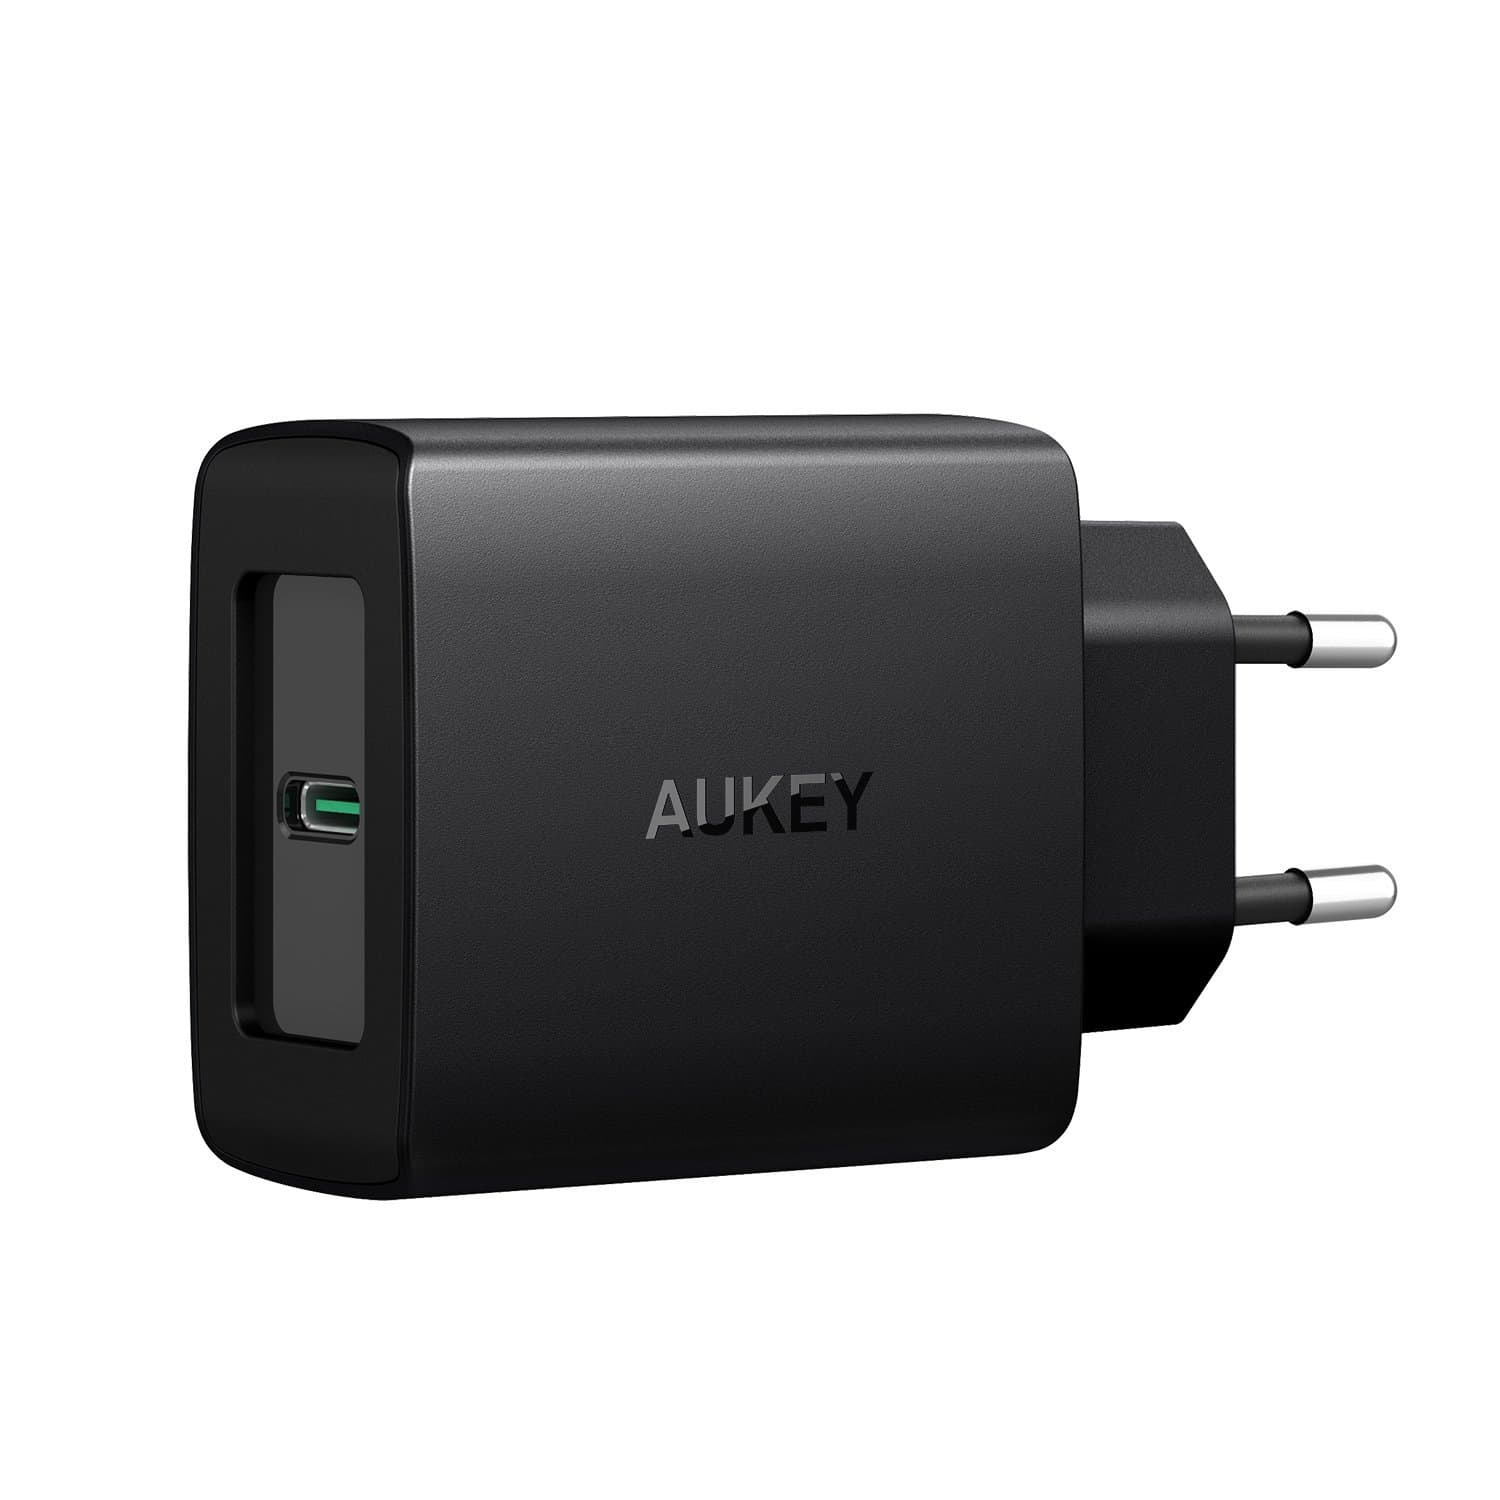 AUKEY PA-Y8 27W Qualcomm Quick Charge 4.0 with Power Delivery 3.0 Charger - EU Plug - Aukey Malaysia Official Store